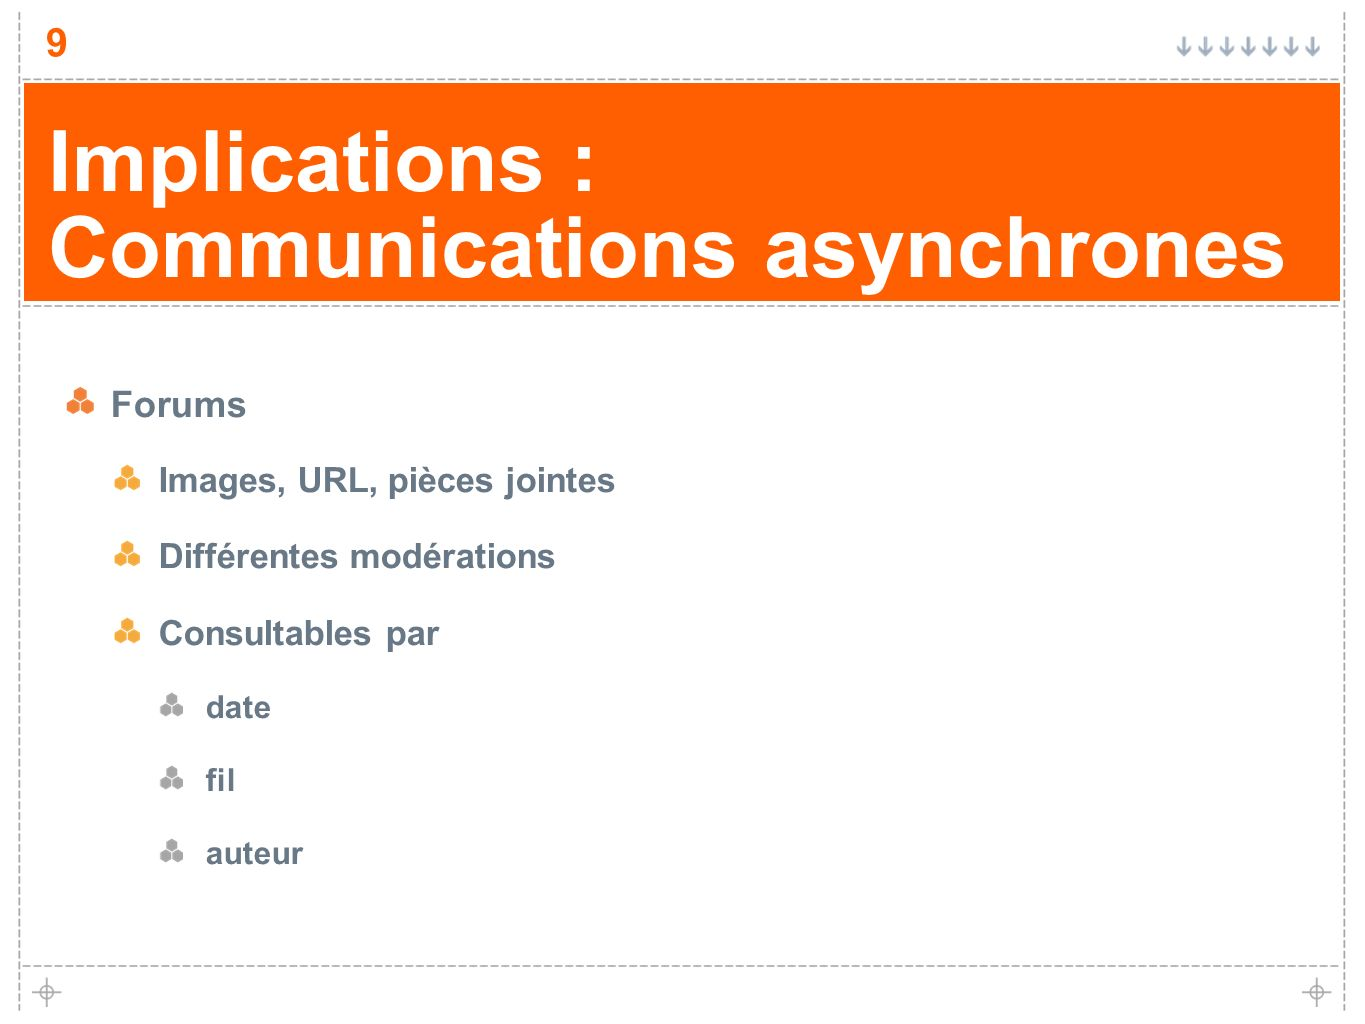 Implications : Communications asynchrones